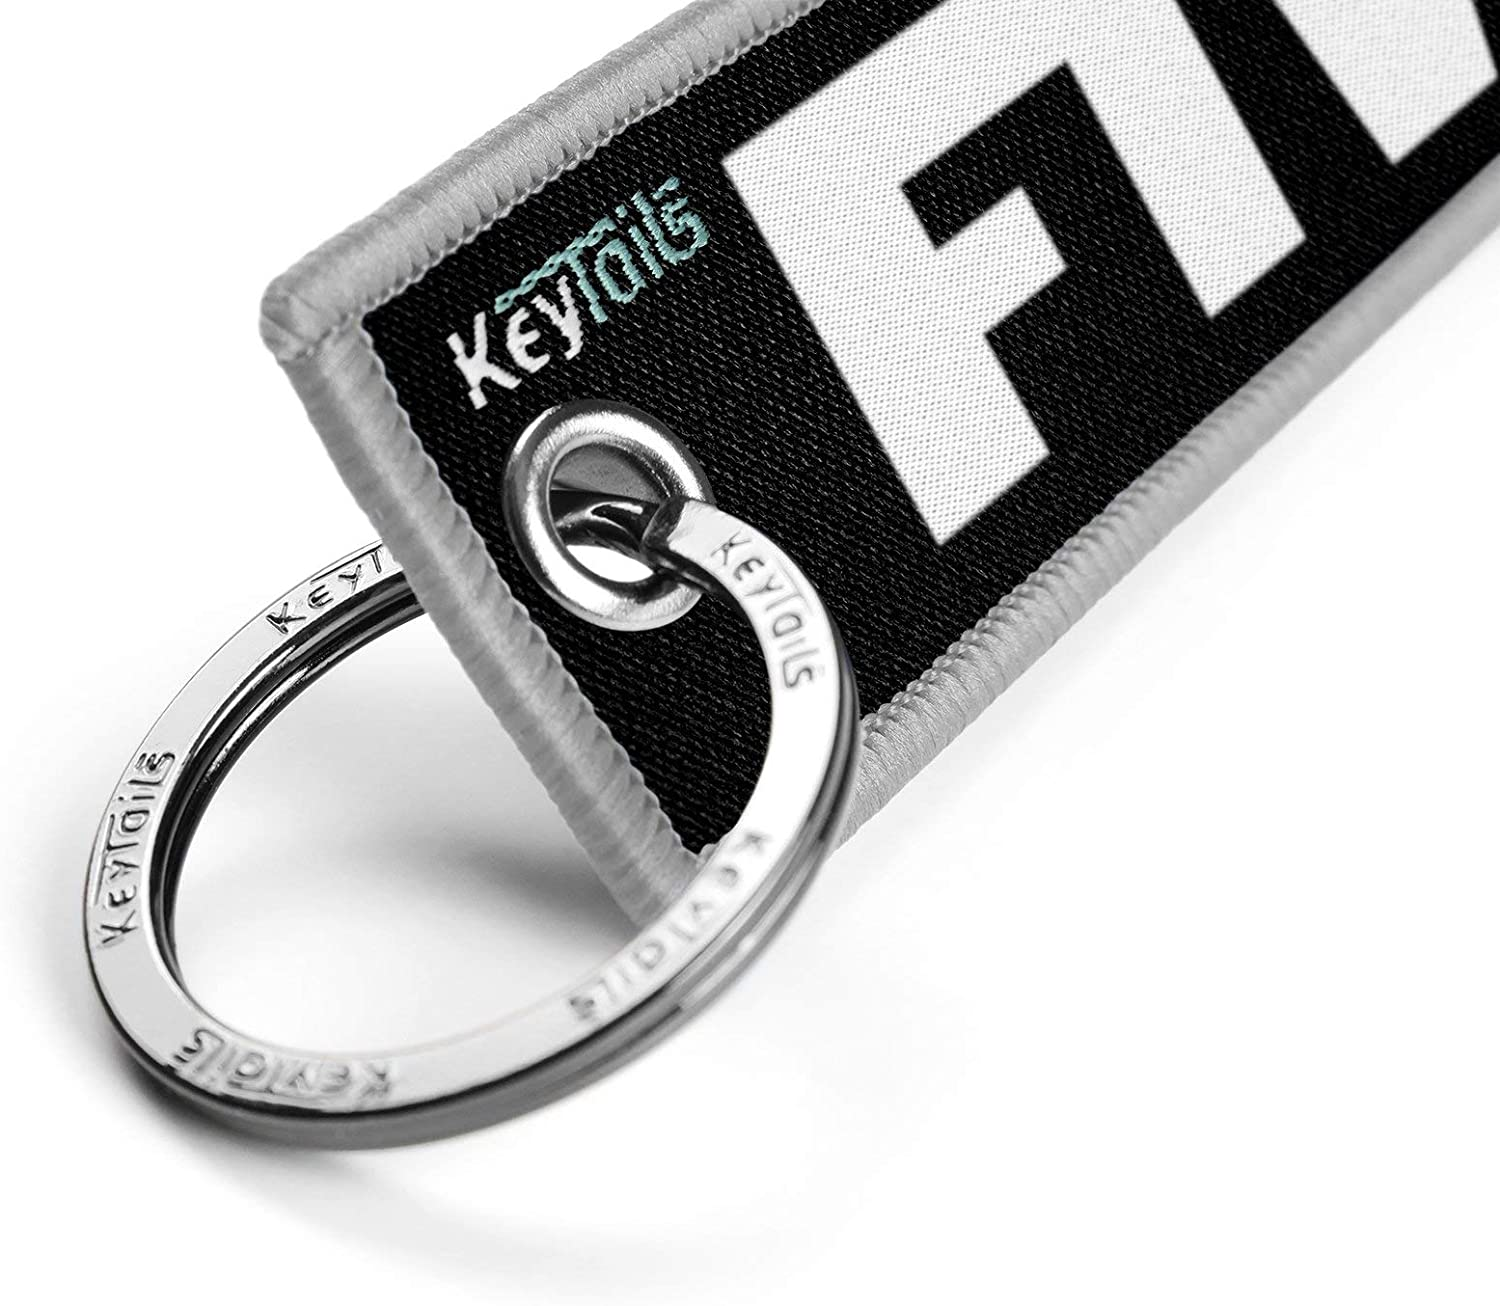 Premium Quality Key Tag for Motorcycle Car ATV FTW - For The Win, Forever Two Wheels Scooter UTV KEYTAILS Keychains